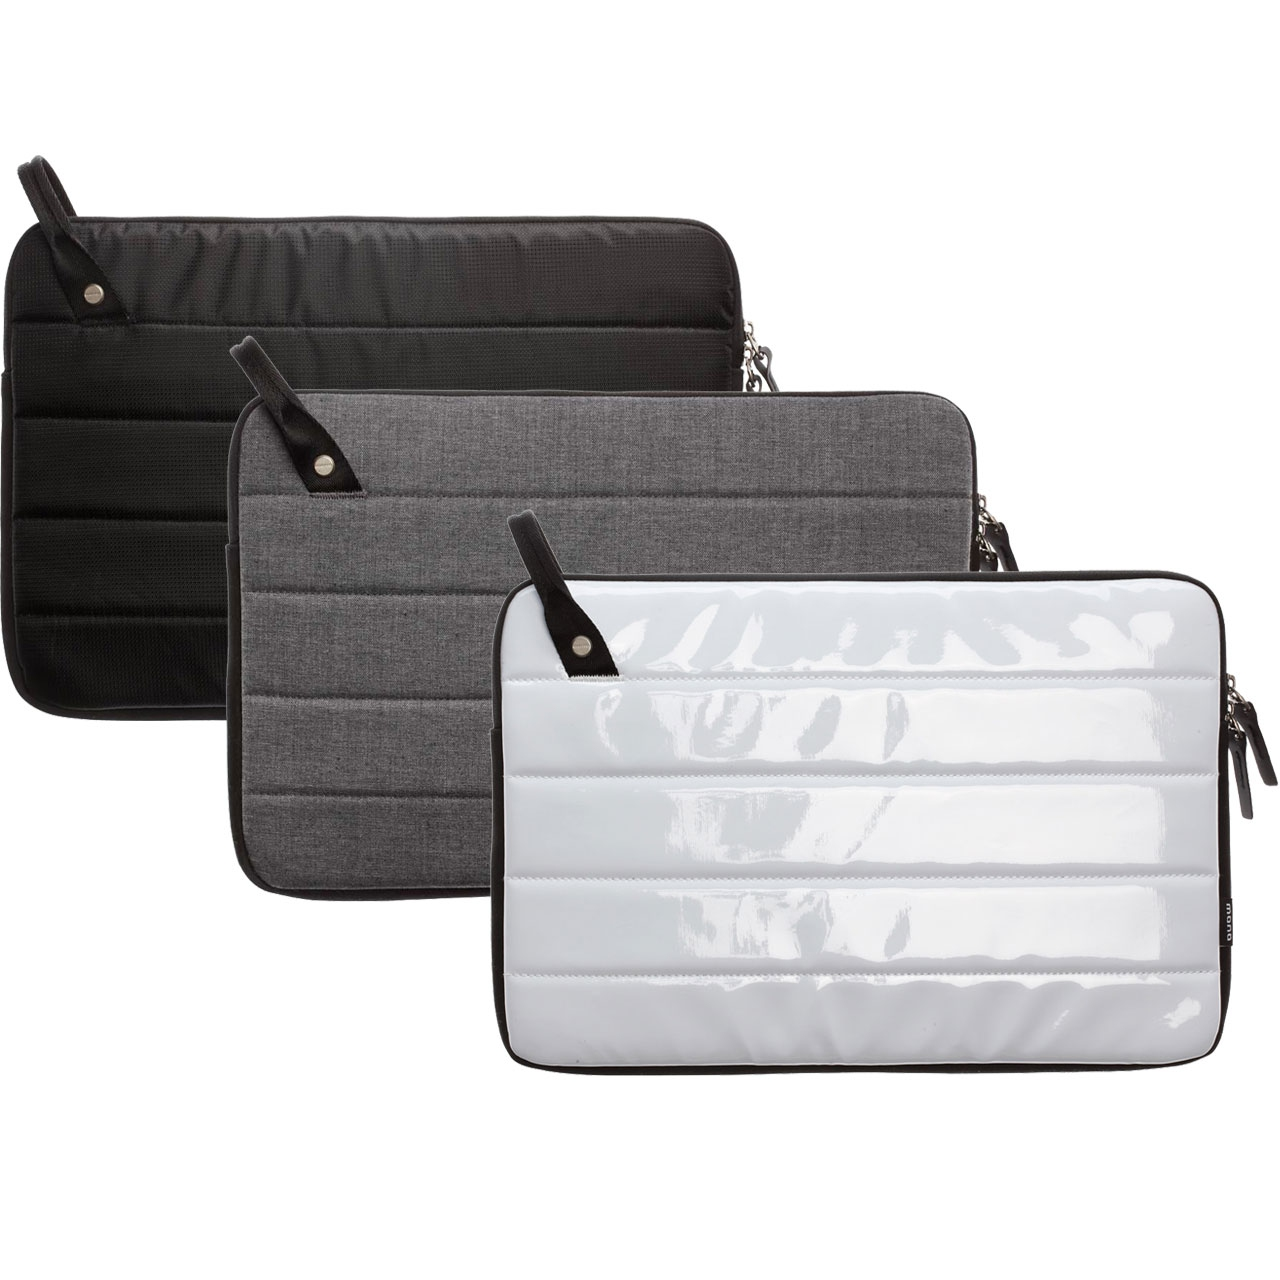 Civilian Loop Laptop Sleeve - Bags   Cases - Accessories 836eaab6953e3